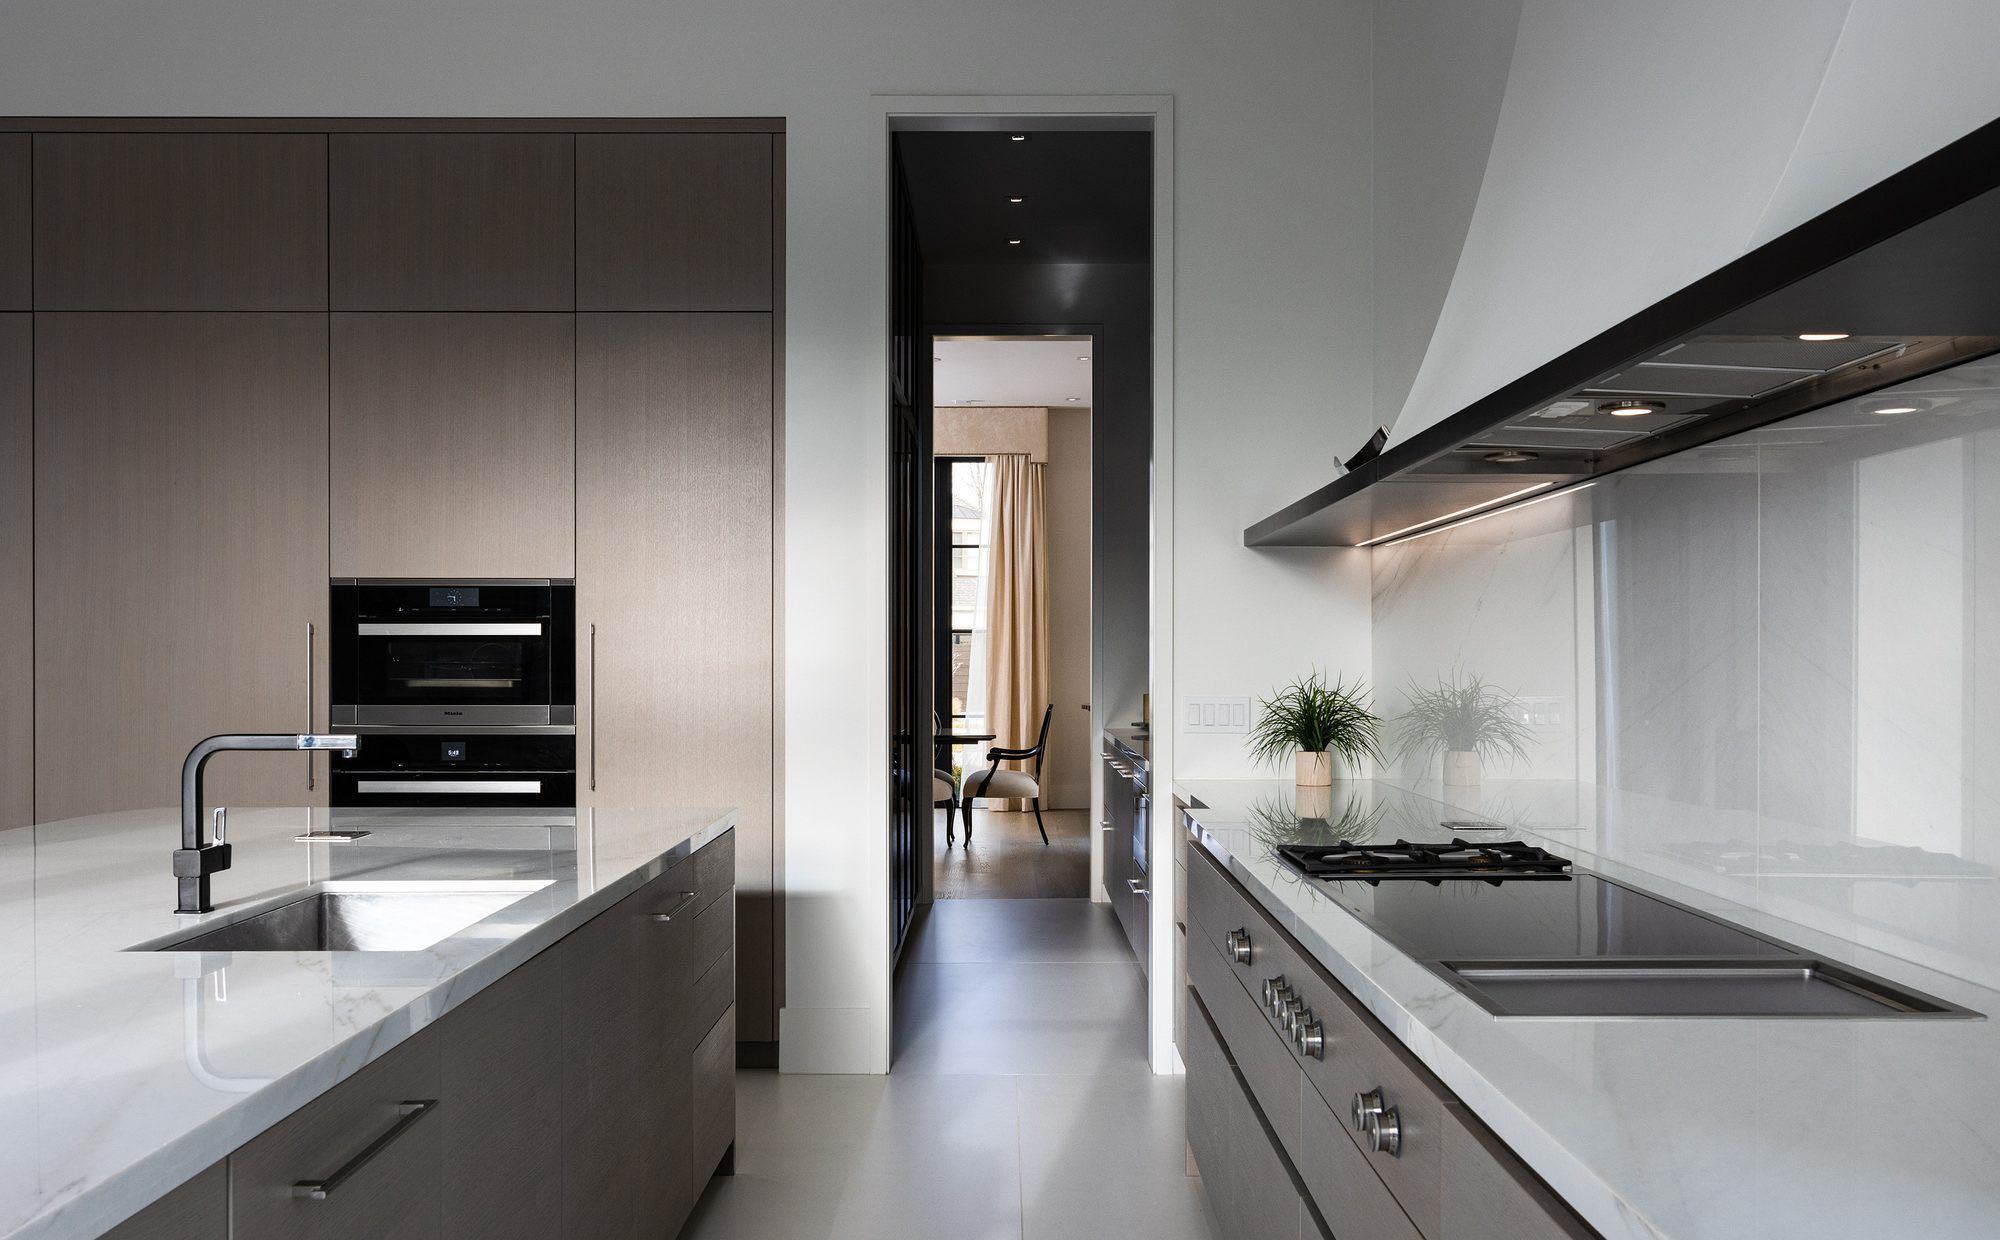 Beautiful modern kitchen design with a muted color palette. Light grayish wood cabinets with marble quartz countertops and backsplash.